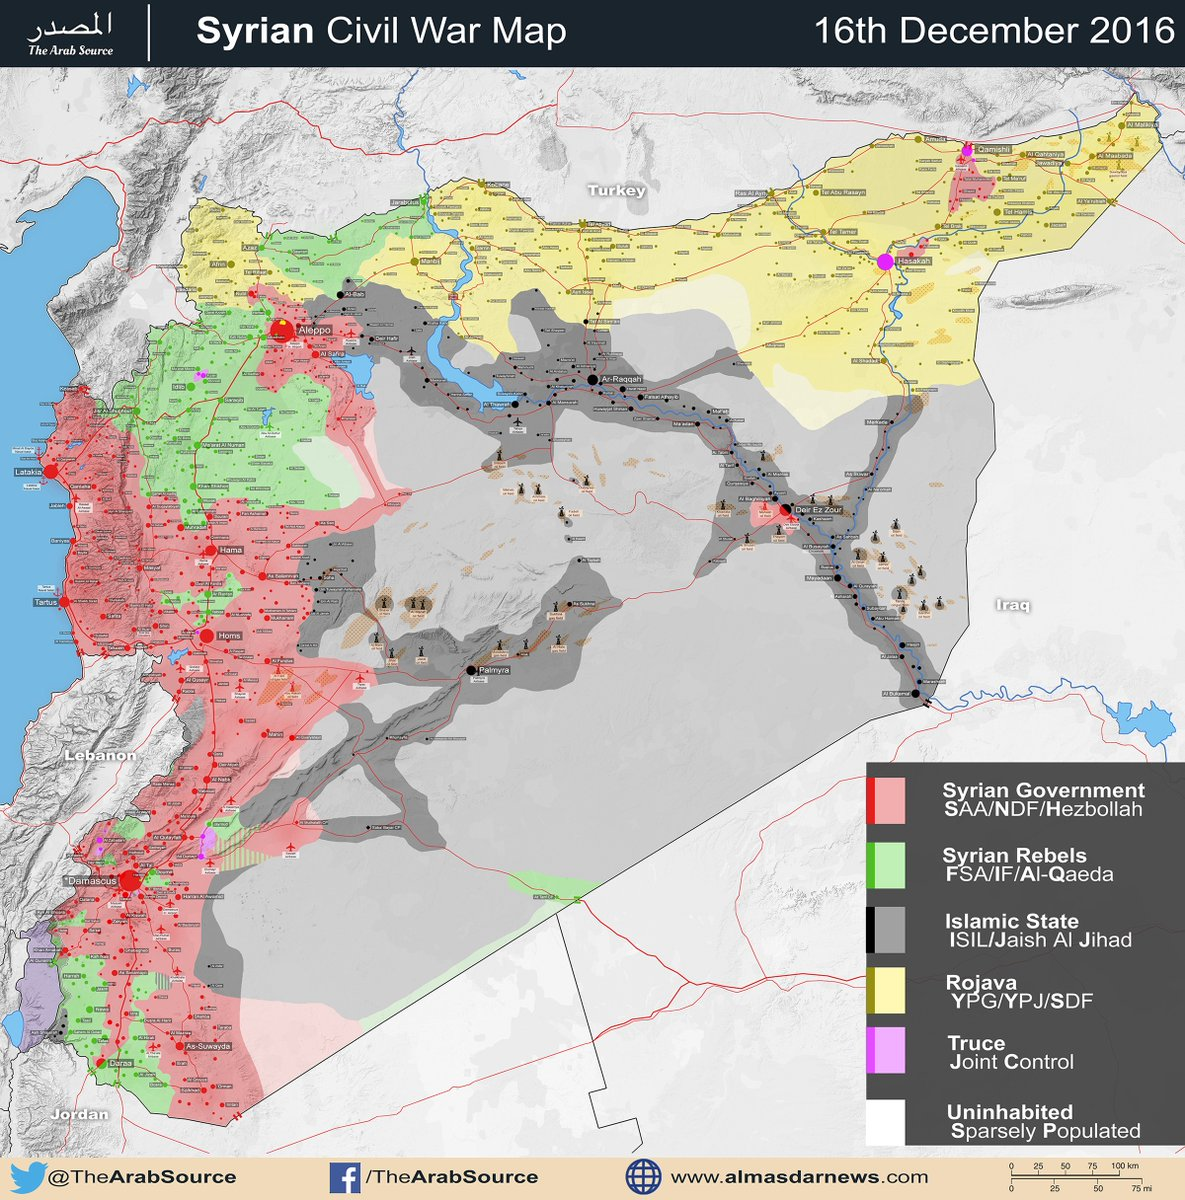 Syria Civil War Map as of December 16th, 2016